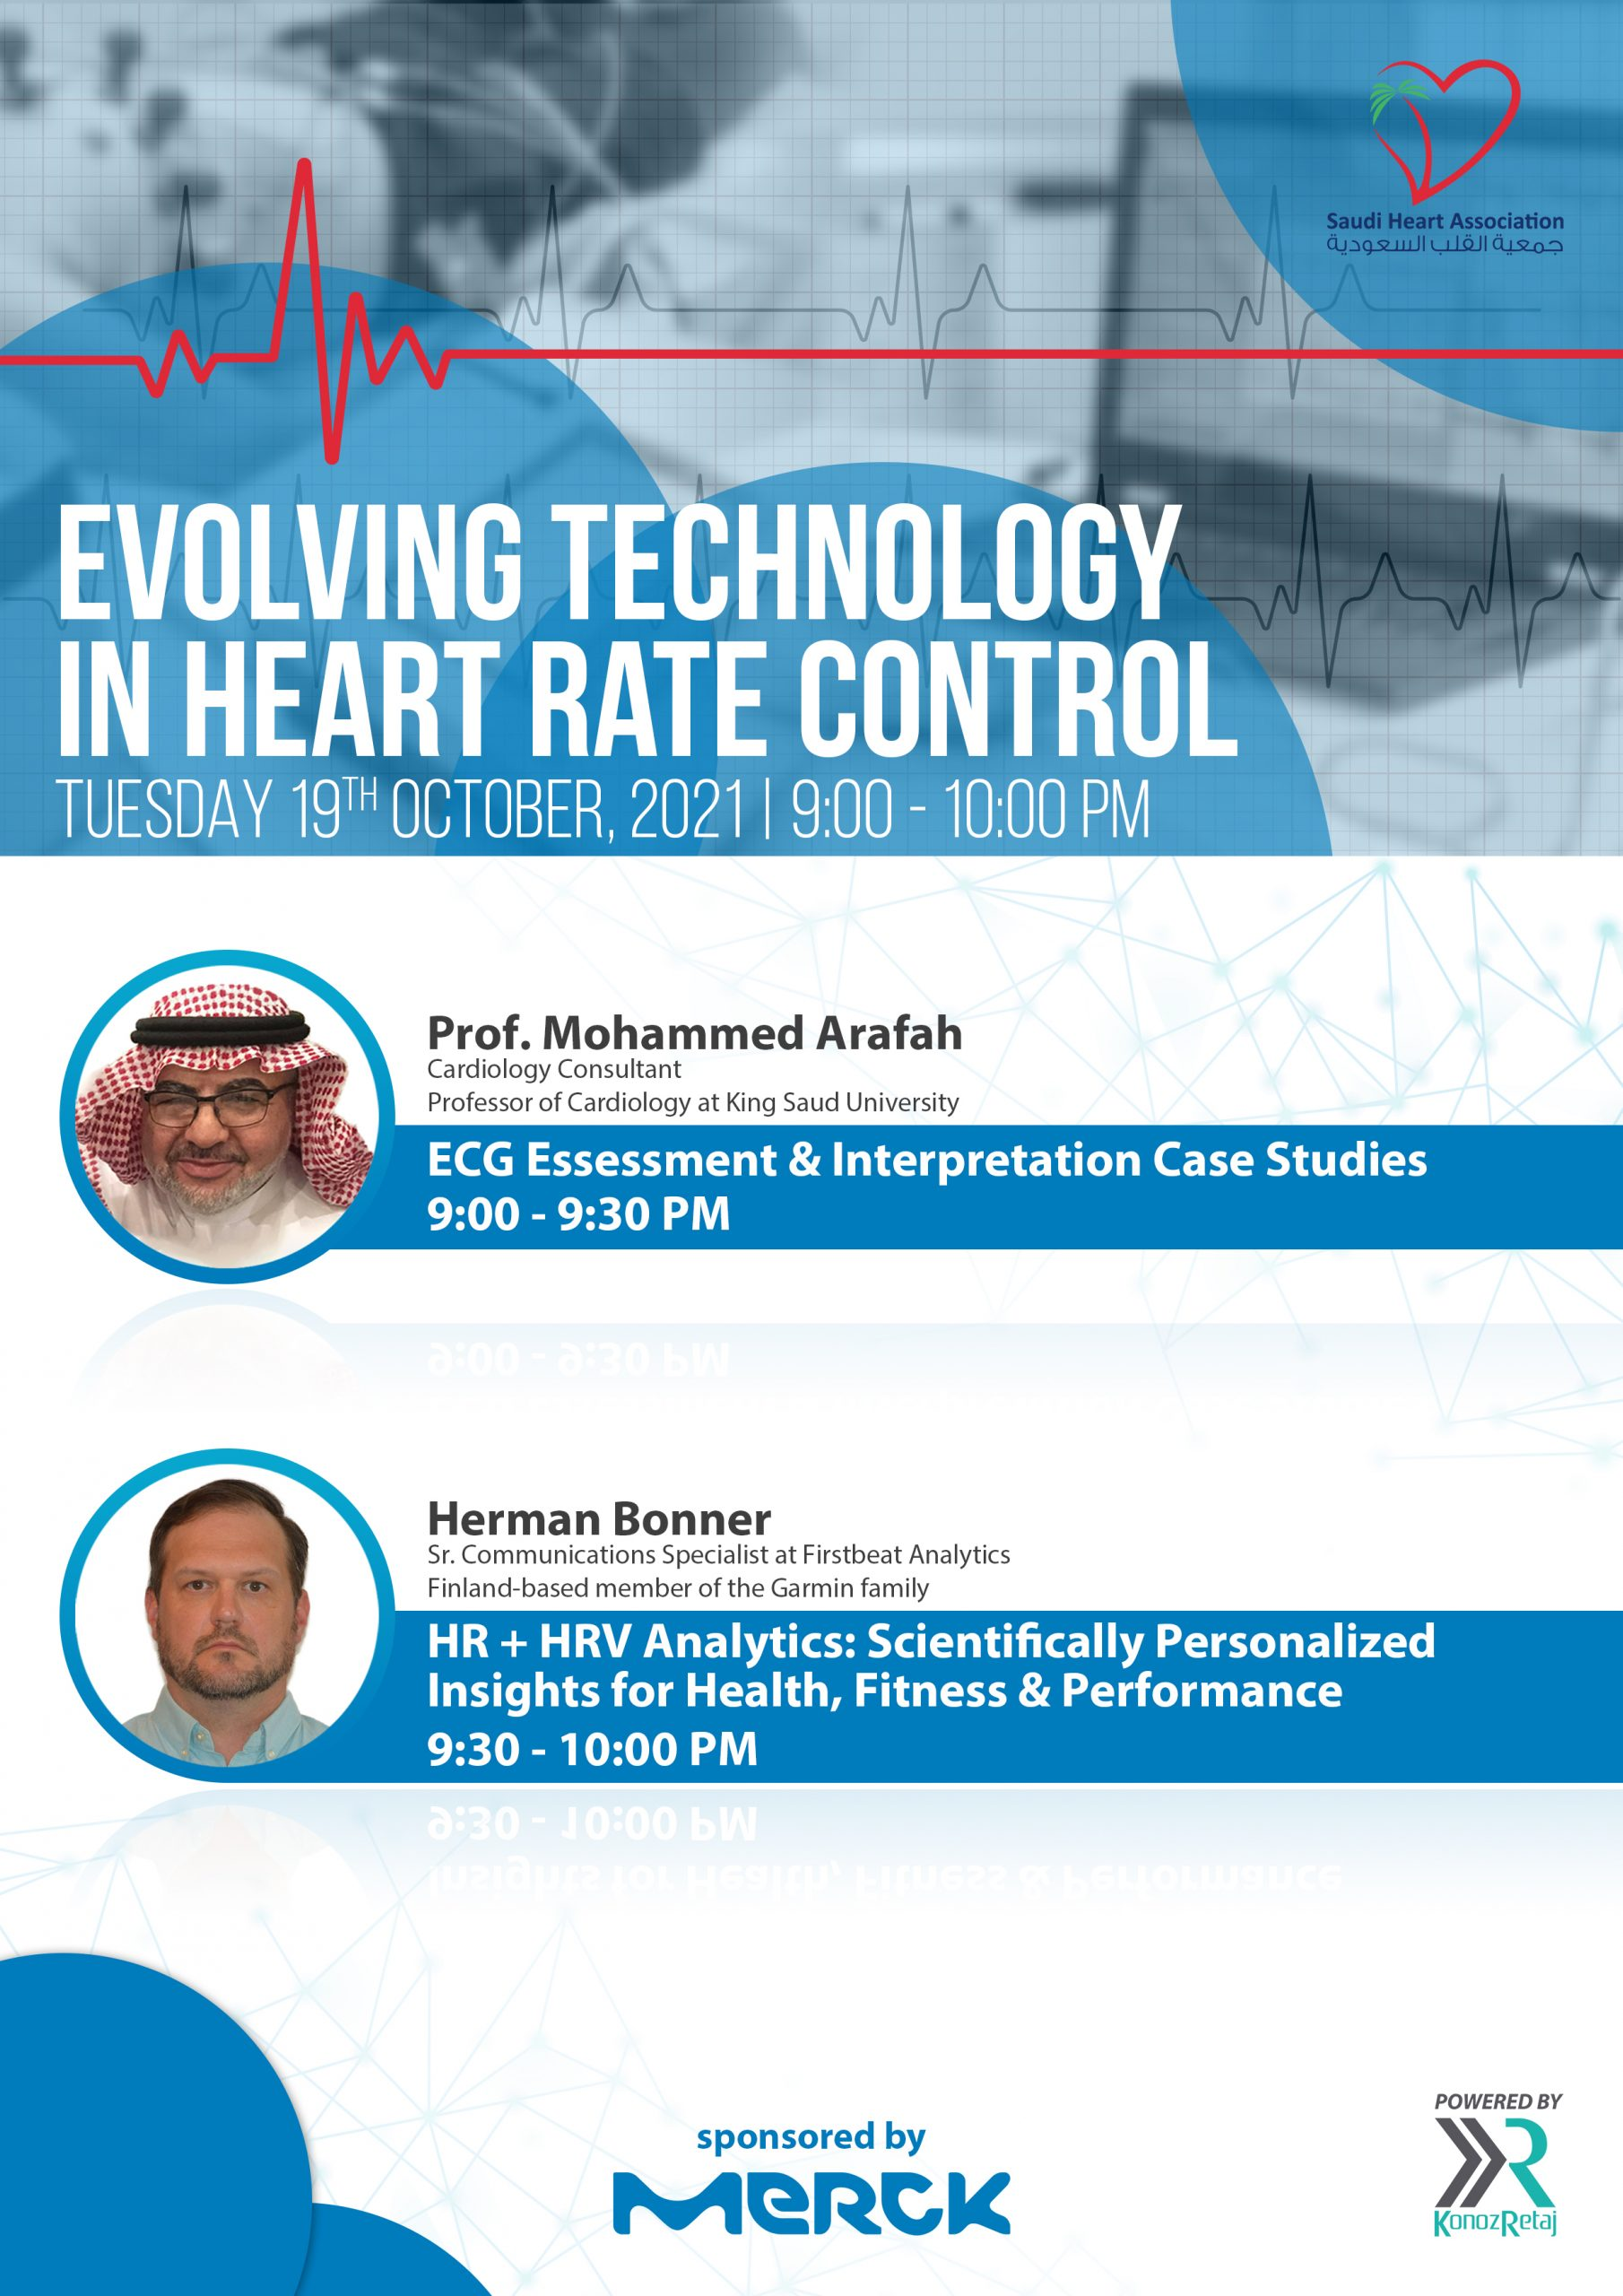 EVOLVING TECHNOLOGY IN HEART RATE CONTROL